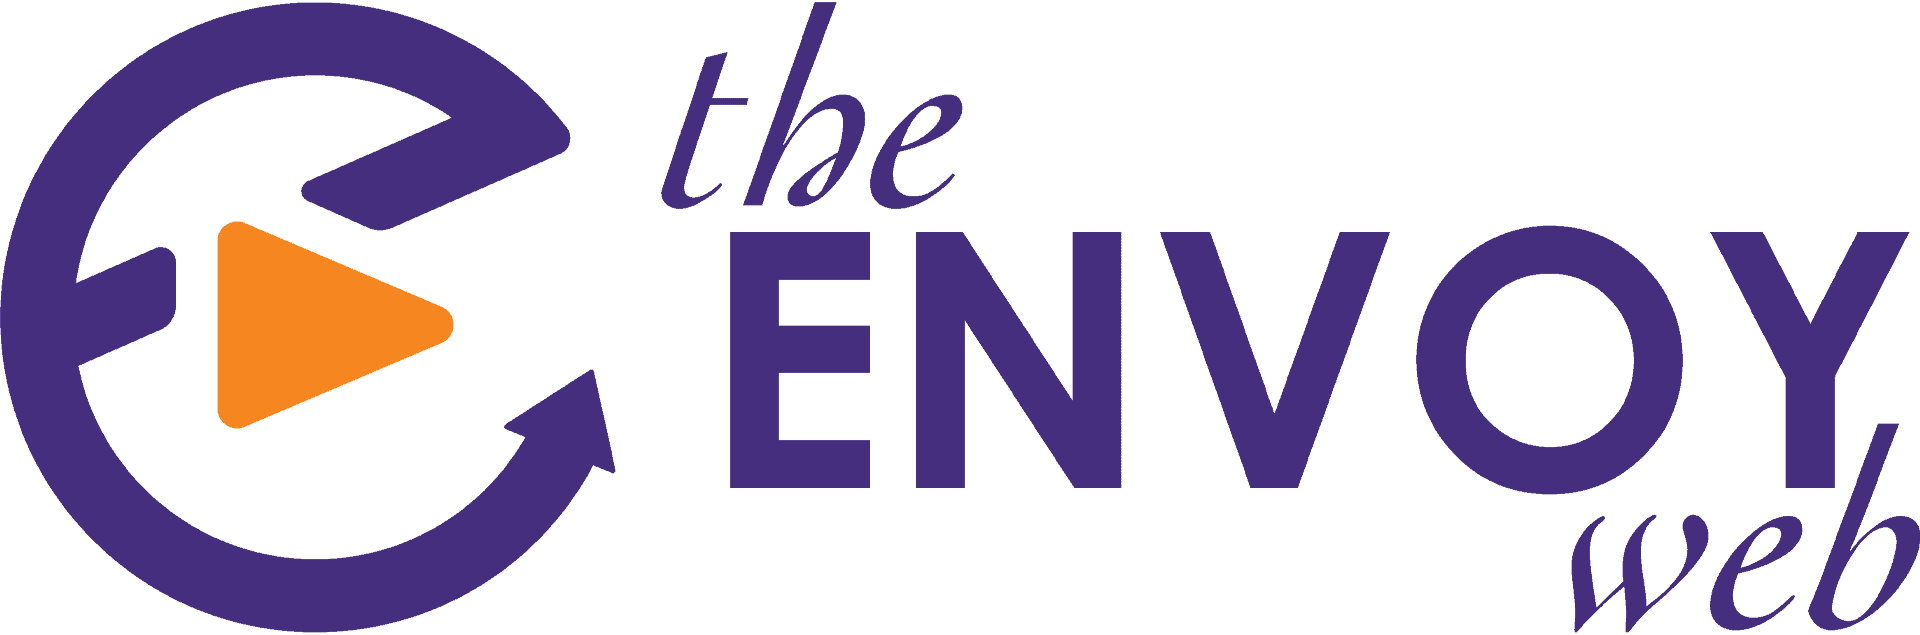 The Envoy Web logo